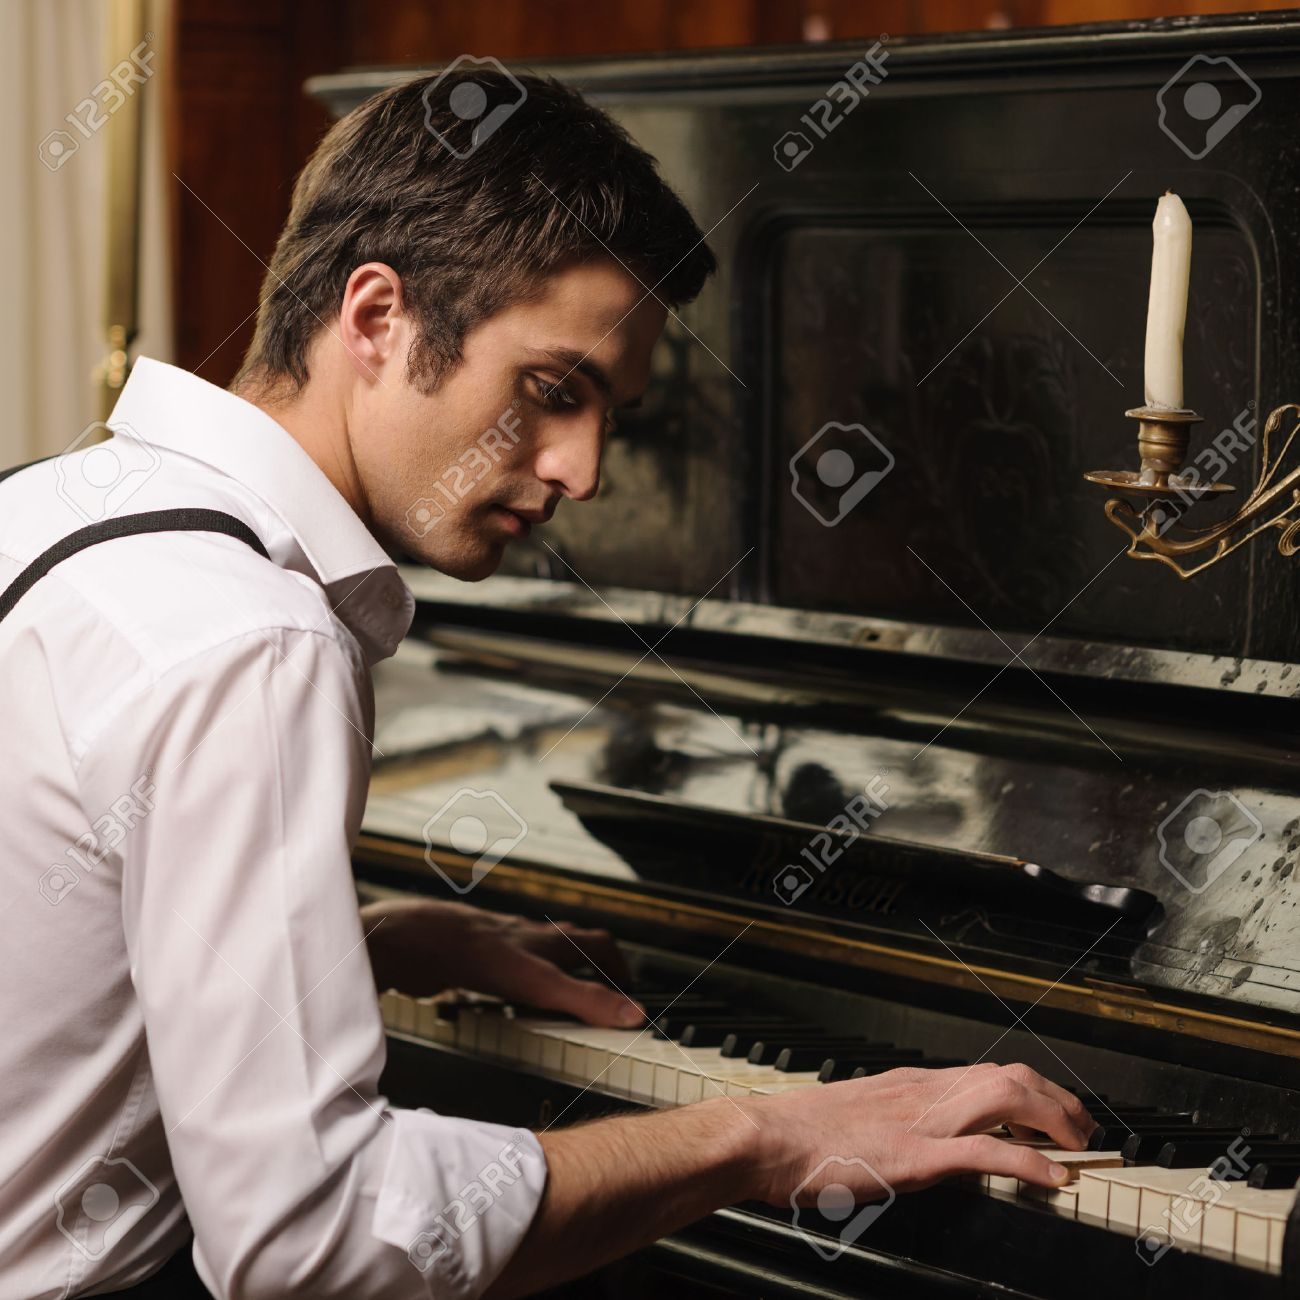 Image result for images of a man playing a piano